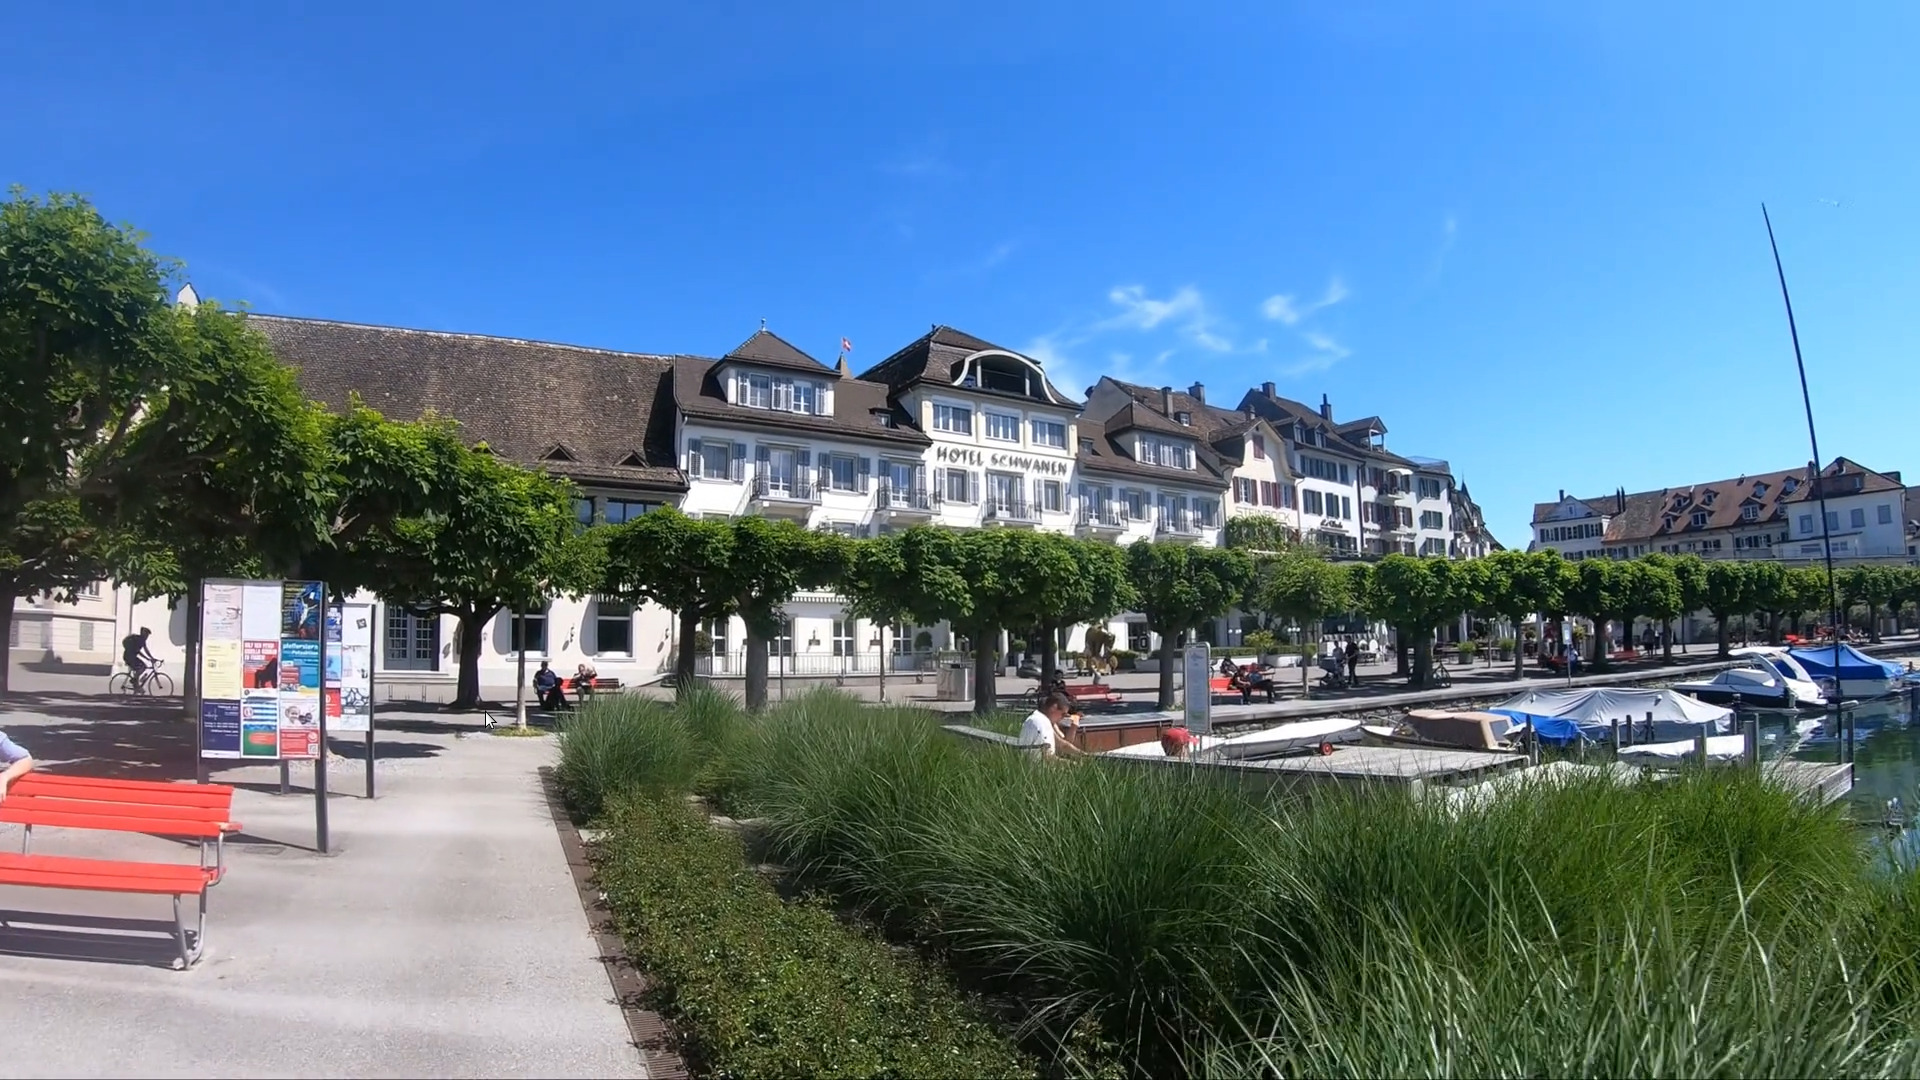 Promenade in Rapperswil